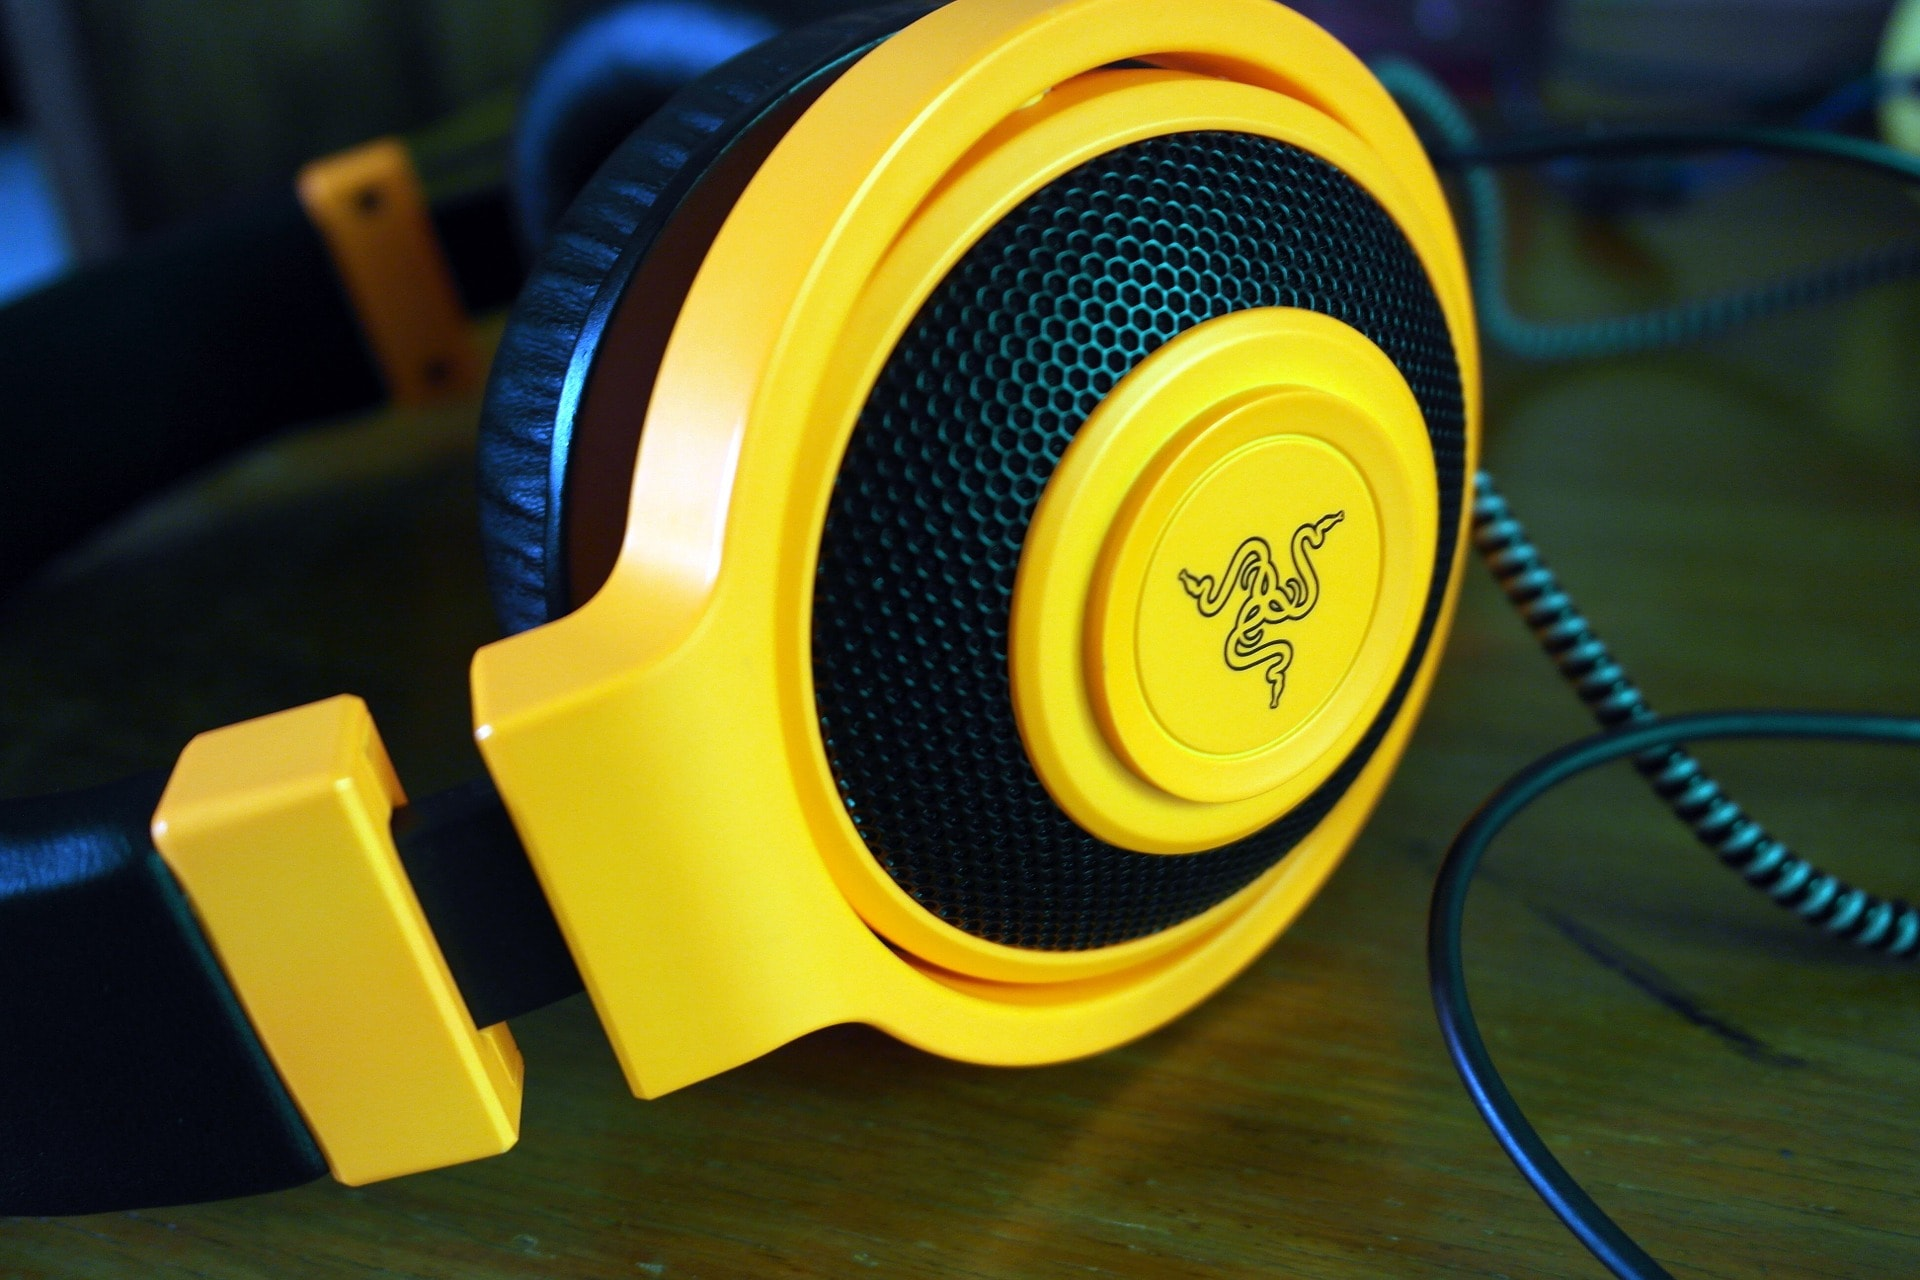 Best headset gaming under 50 [Top 10 Guide]